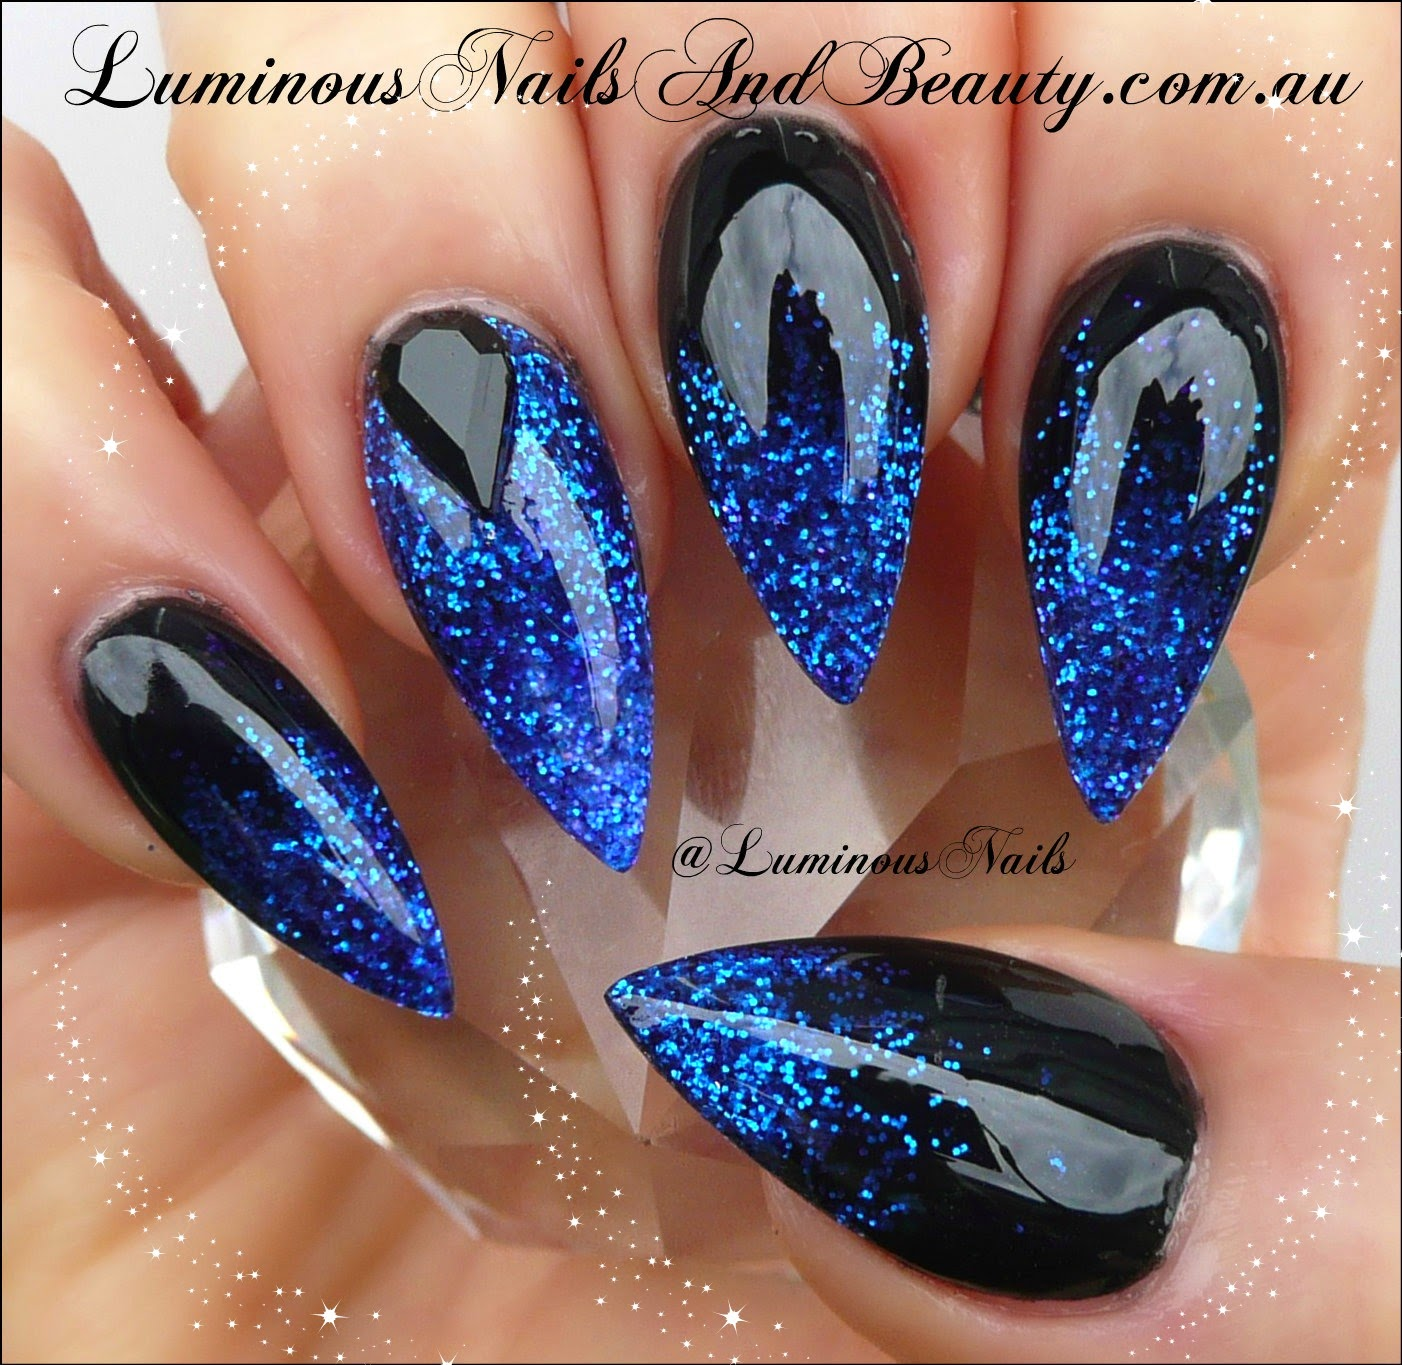 Royal blue and silver nail designs royal blue and silver nail designs blue gold nails on pinterest summer nails almond prinsesfo Choice Image